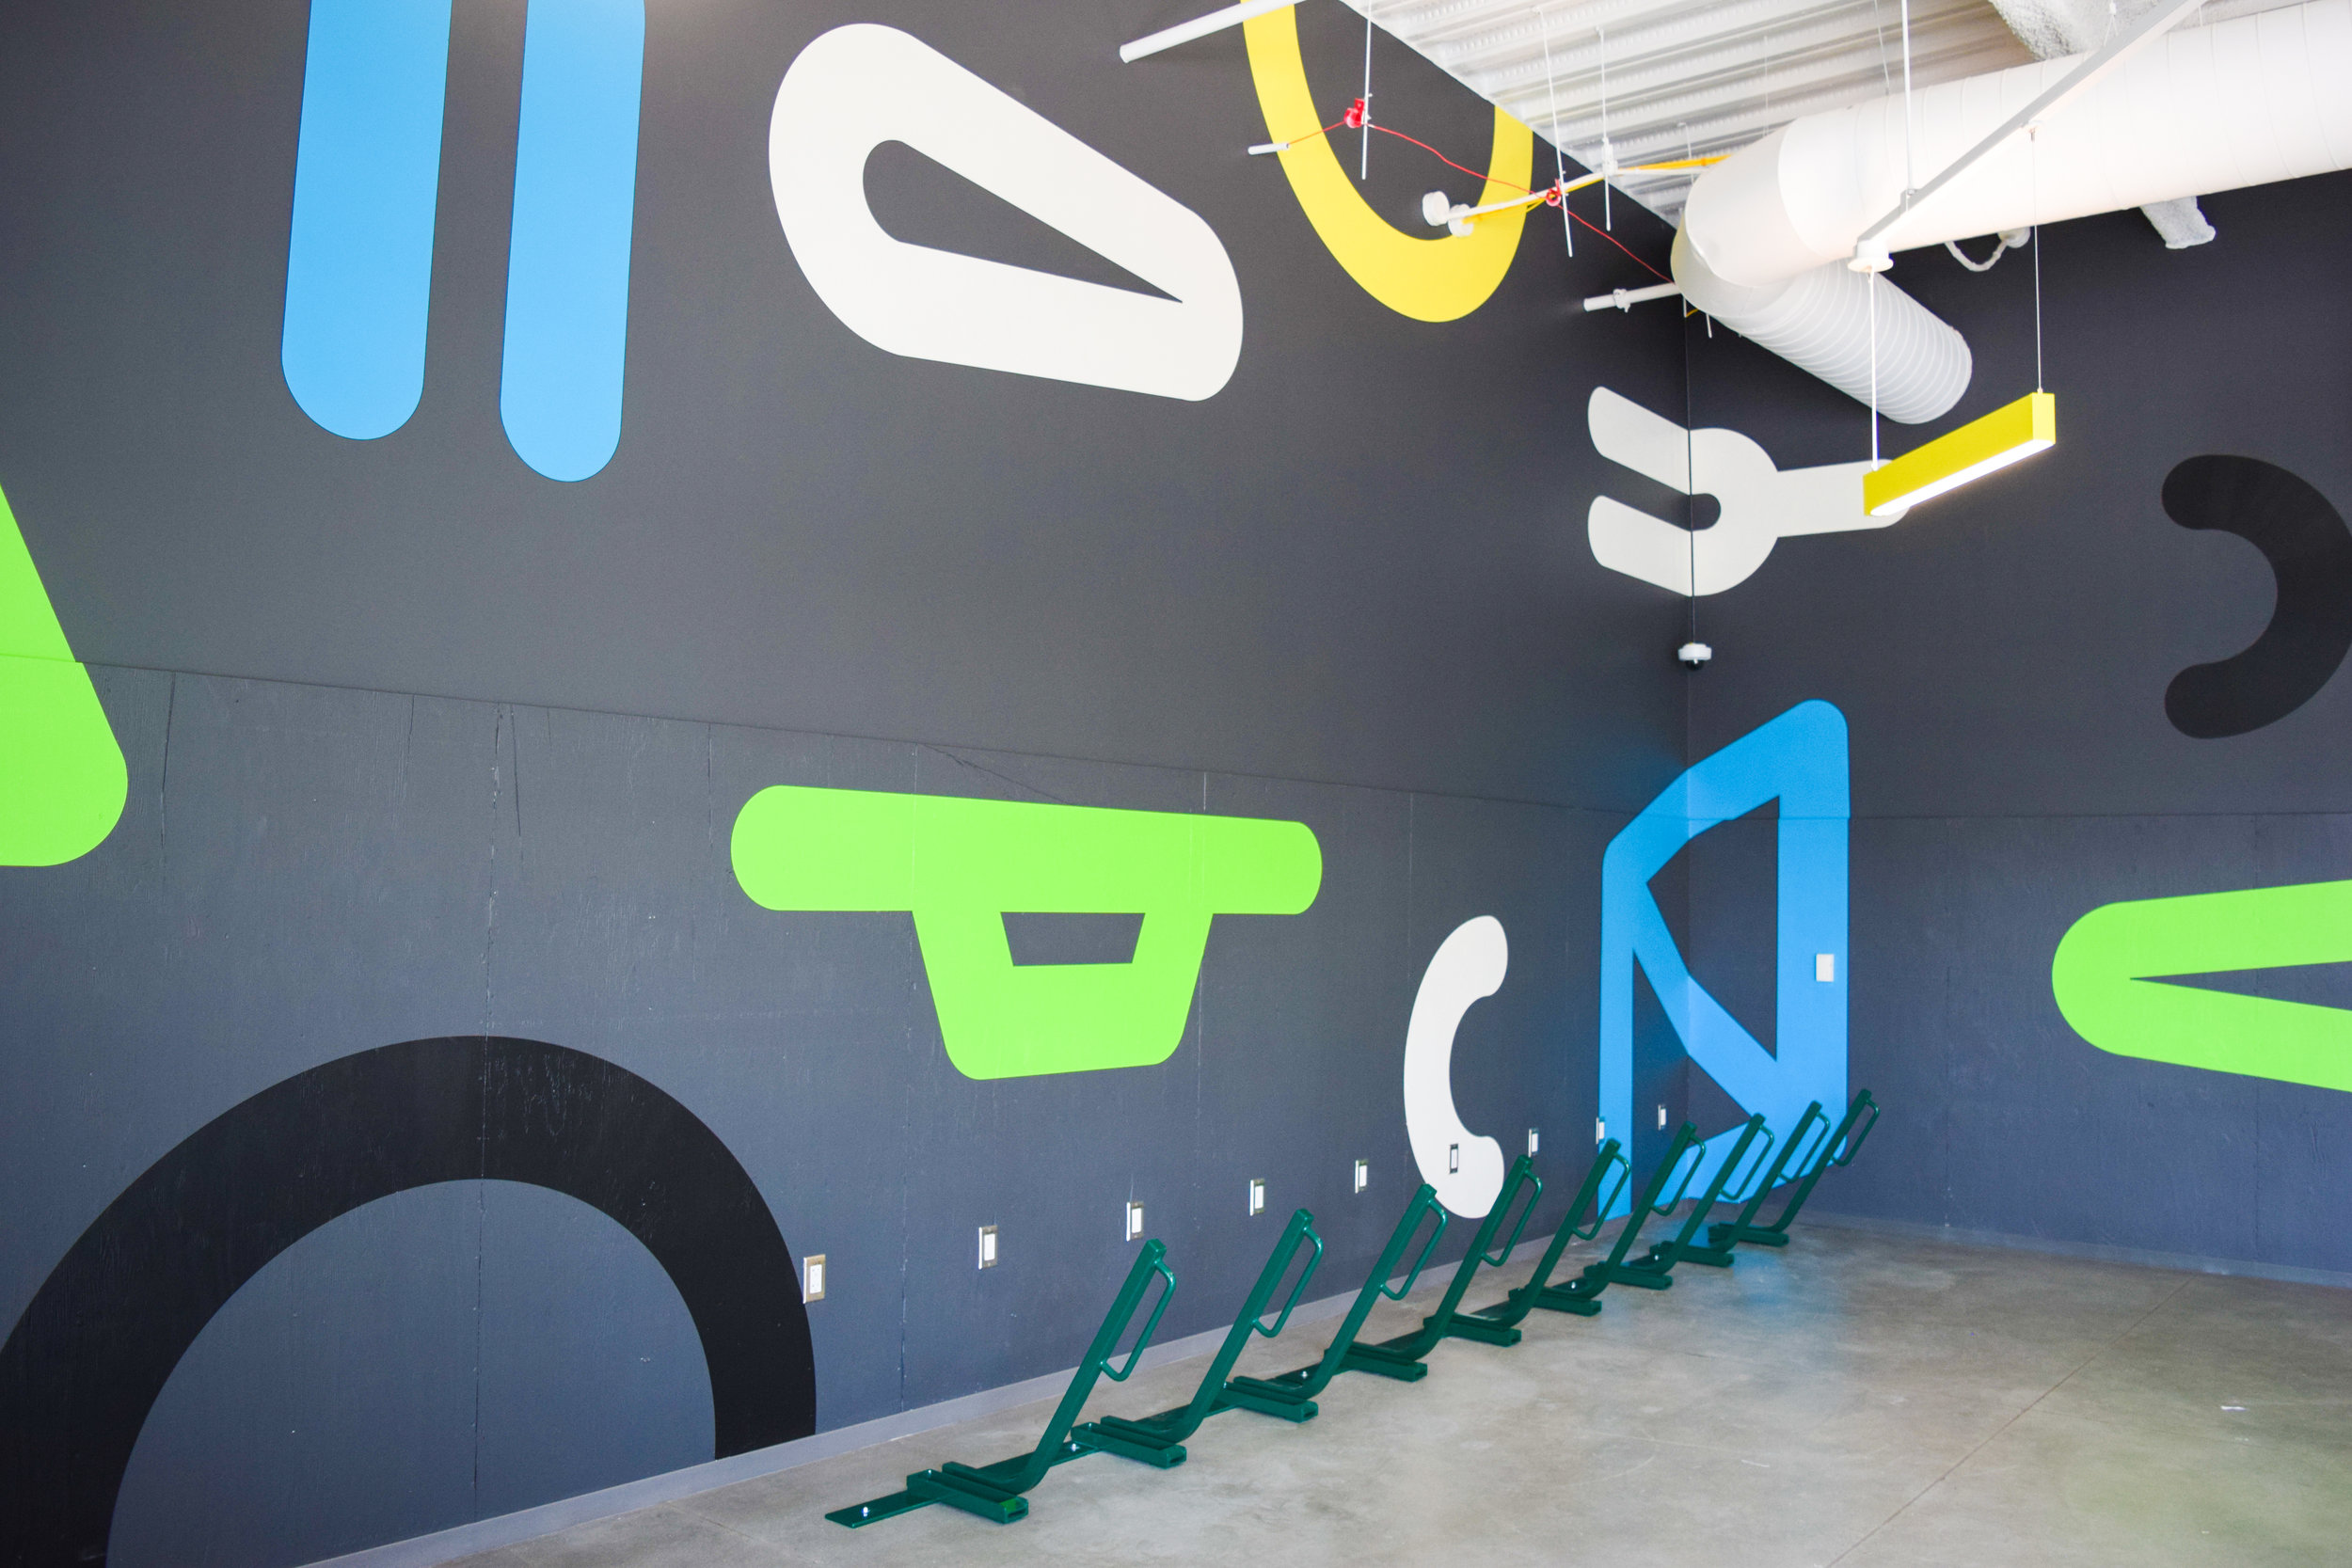 Design of hand-painted wall mural in secure bike storage